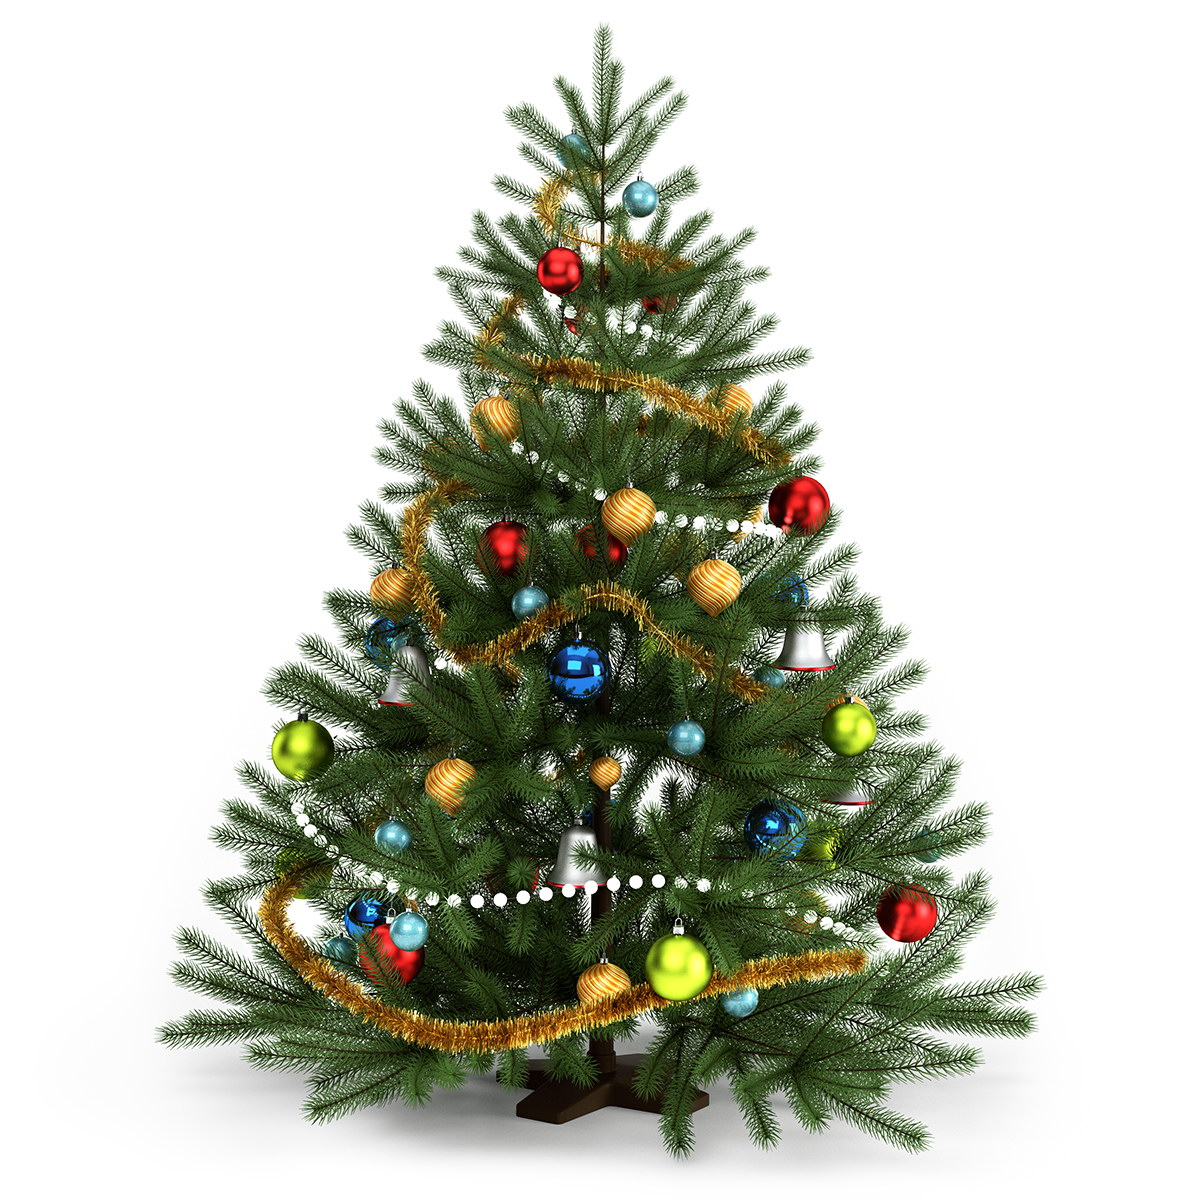 Christmas tree free 3d model max rockthe3d Large decorated christmas trees